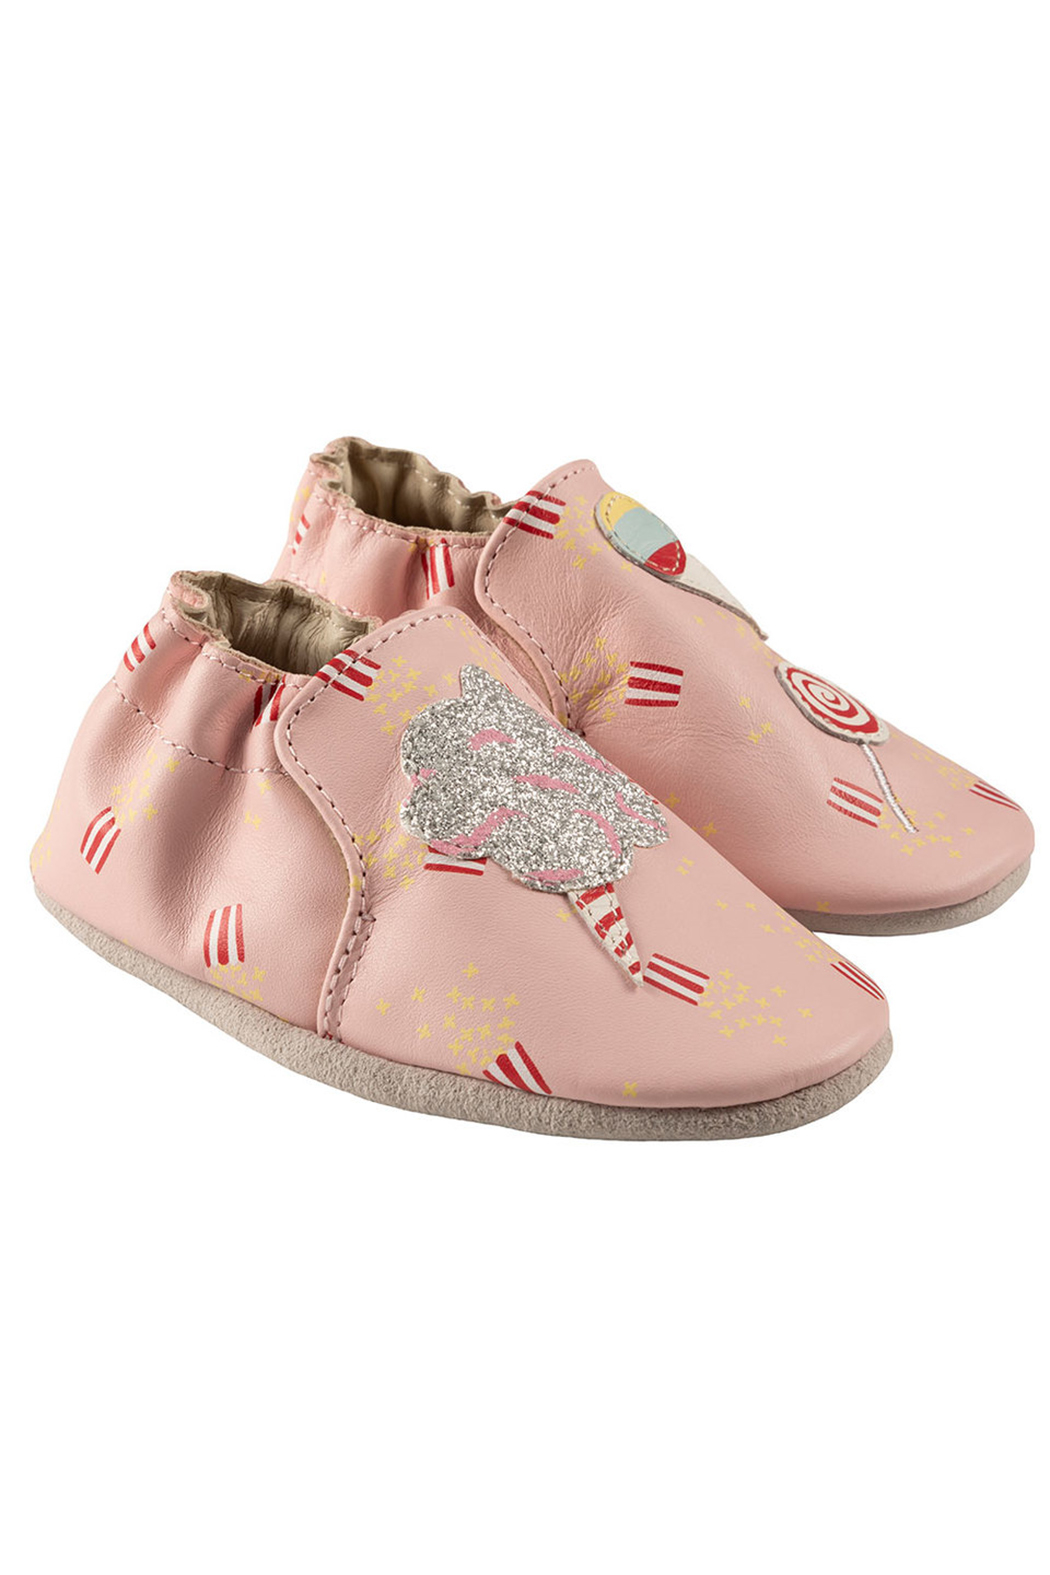 Robeez Dolce Soft Soles Baby Shoes - Main Image